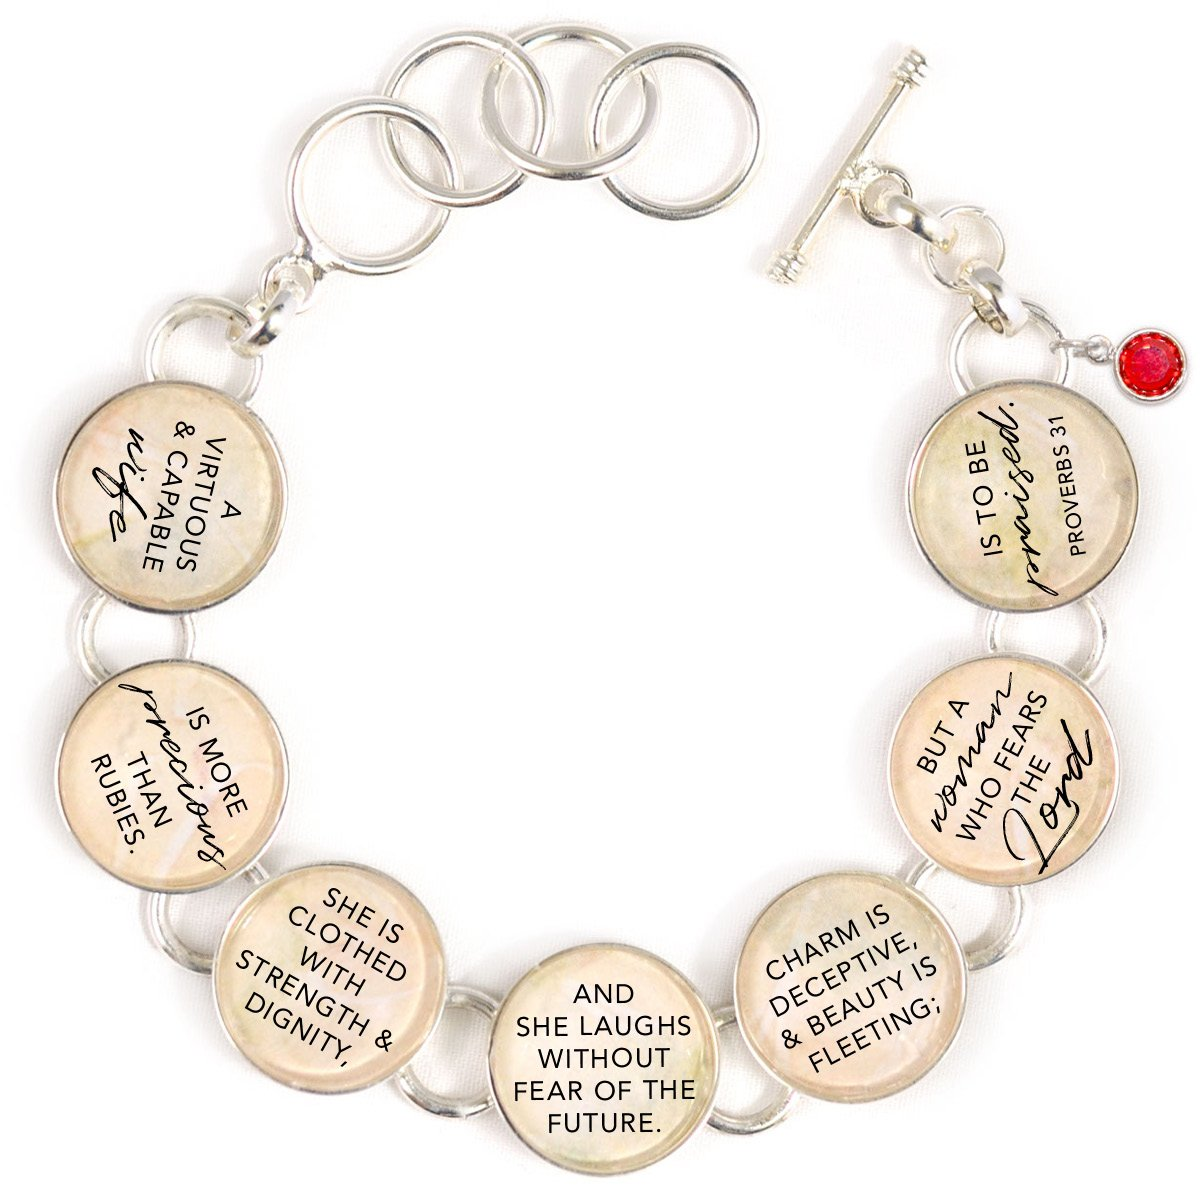 Proverbs 31 Woman Silver-Plated Scripture Charm Bracelet with Ruby-Red Swarovski - 7 Charms, Large (7.5 - 8.5'')